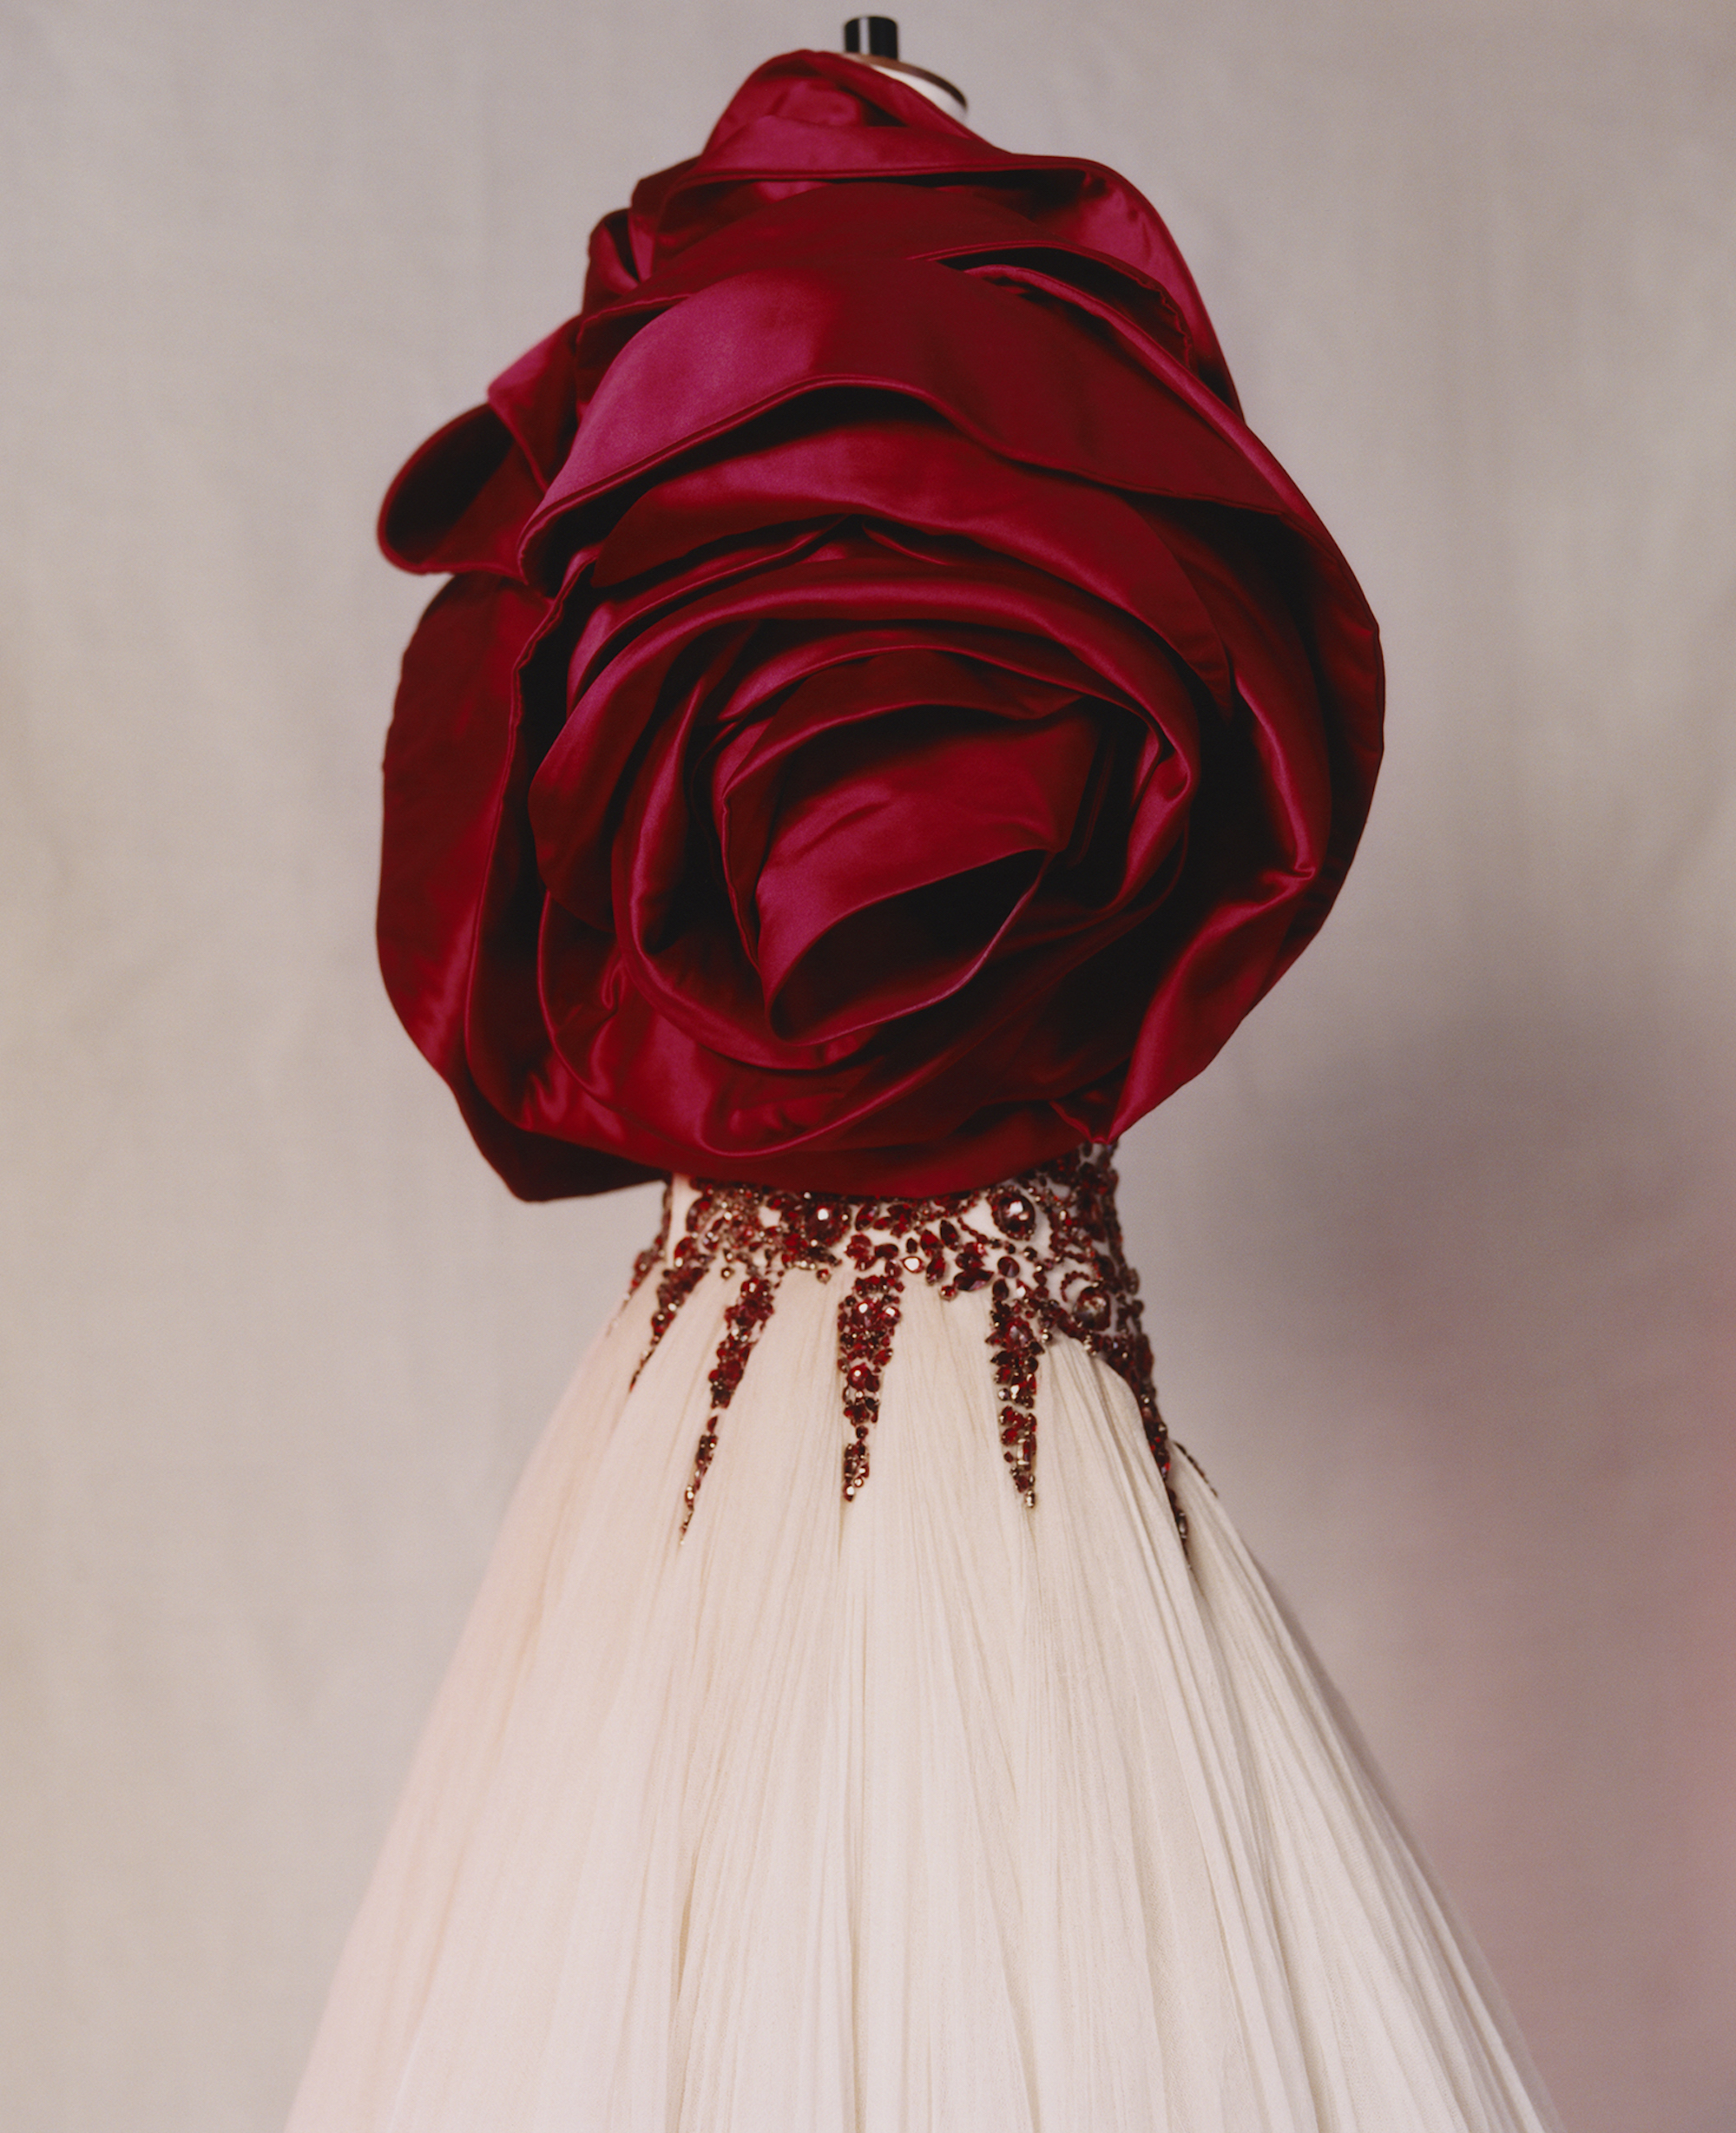 McQueen Creators roses dress